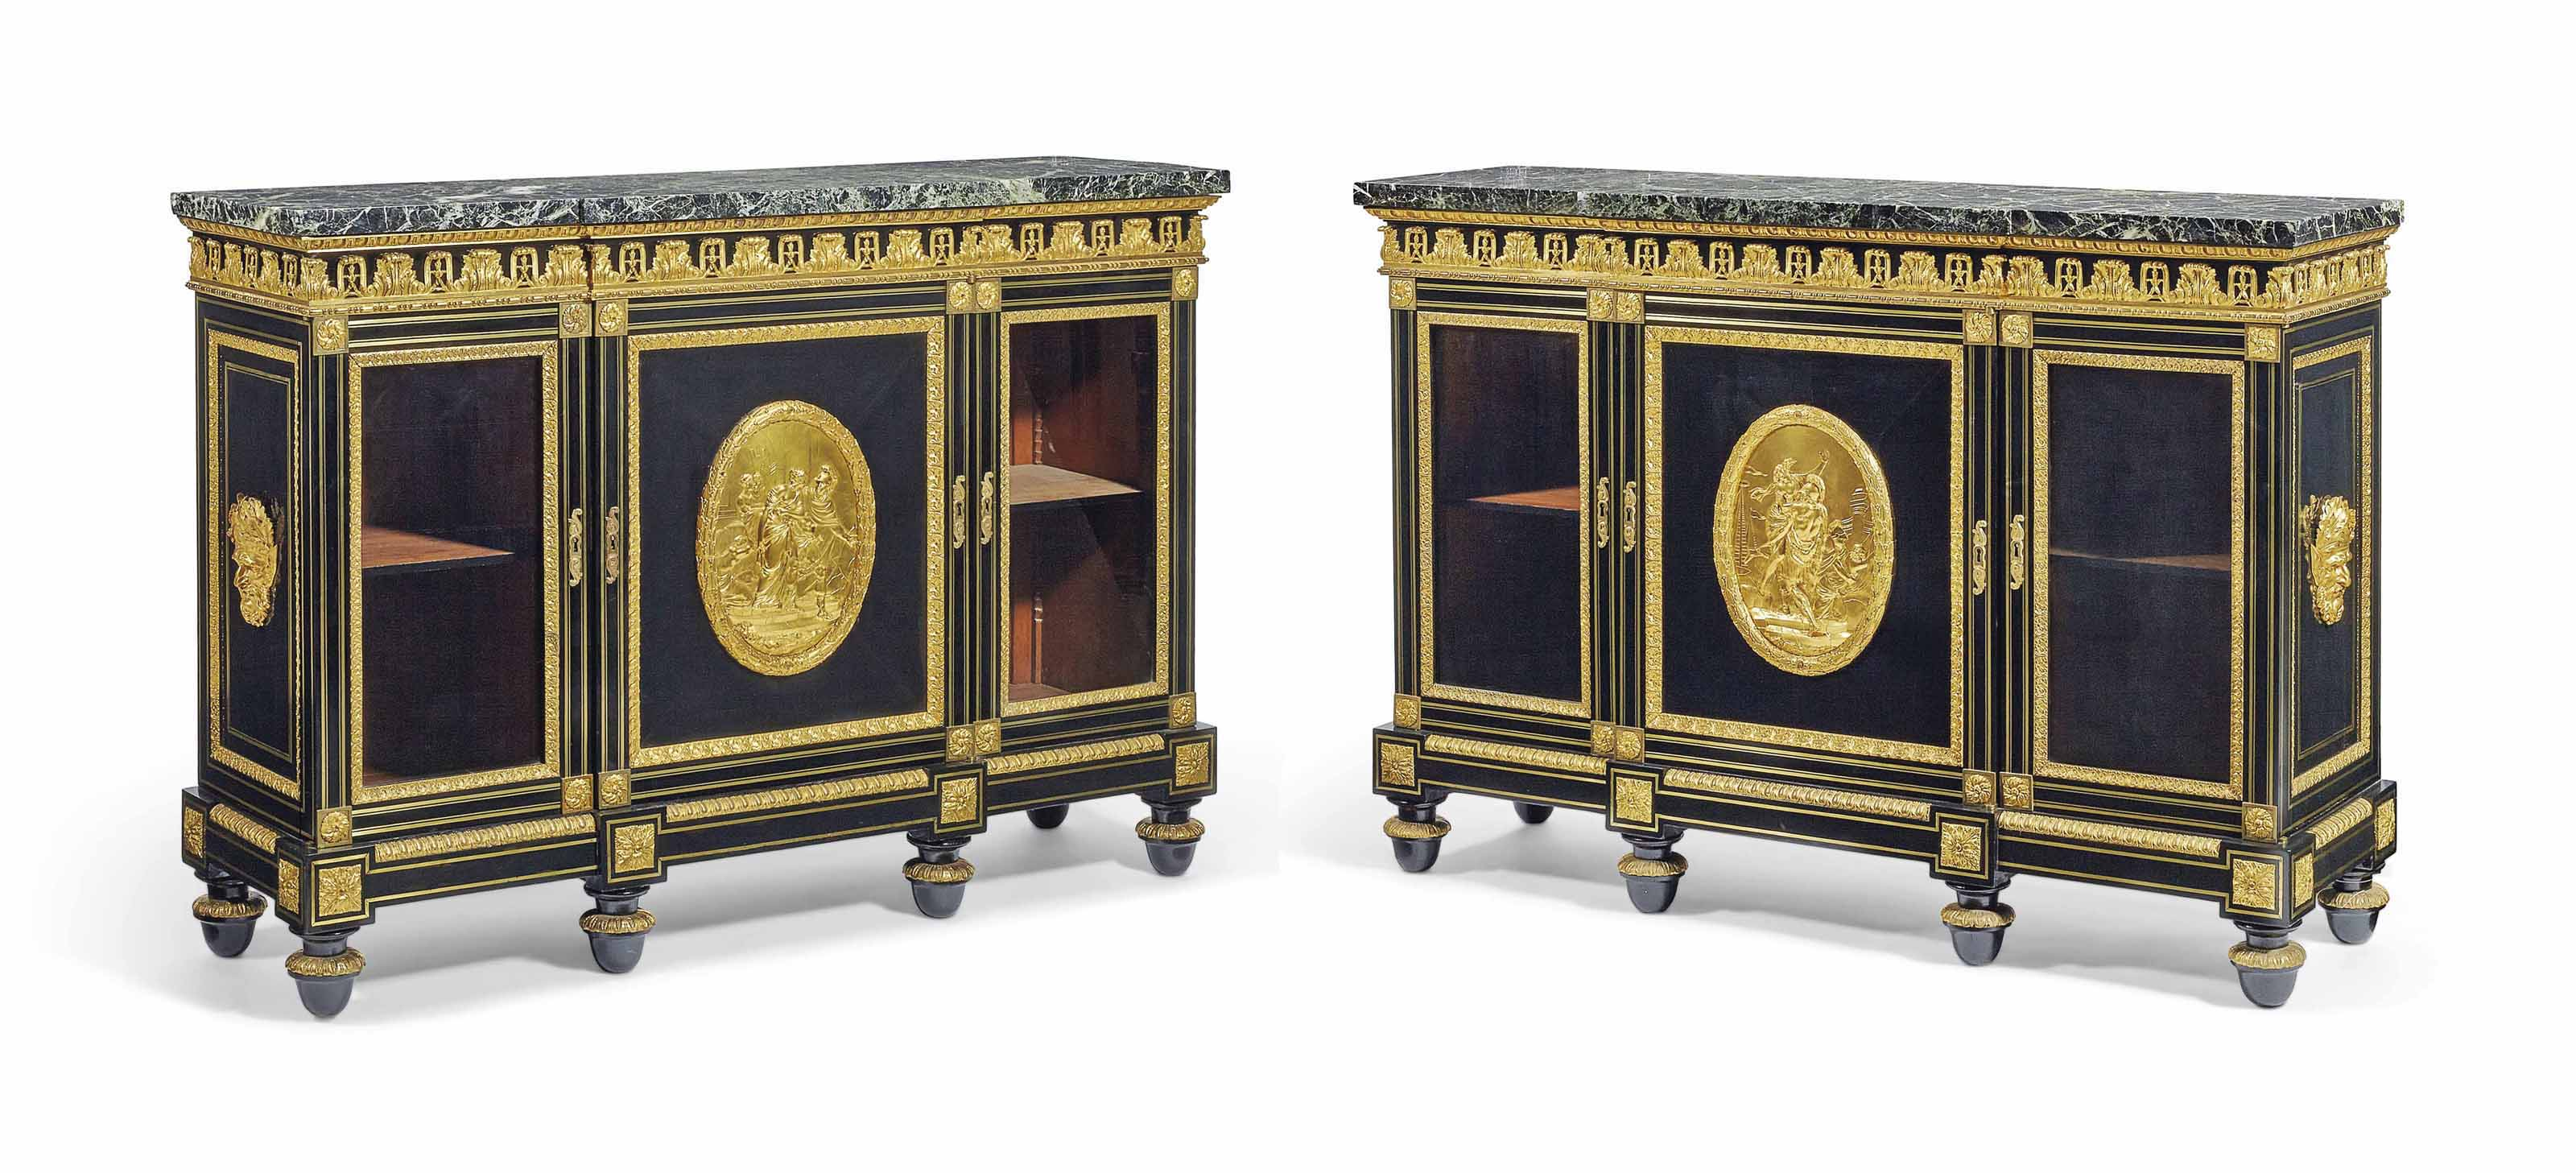 A PAIR OF RESTAURATION ORMOLU-MOUNTED AND BRASS-INLAID EBONY BIBLIOTHEQUE BASSES